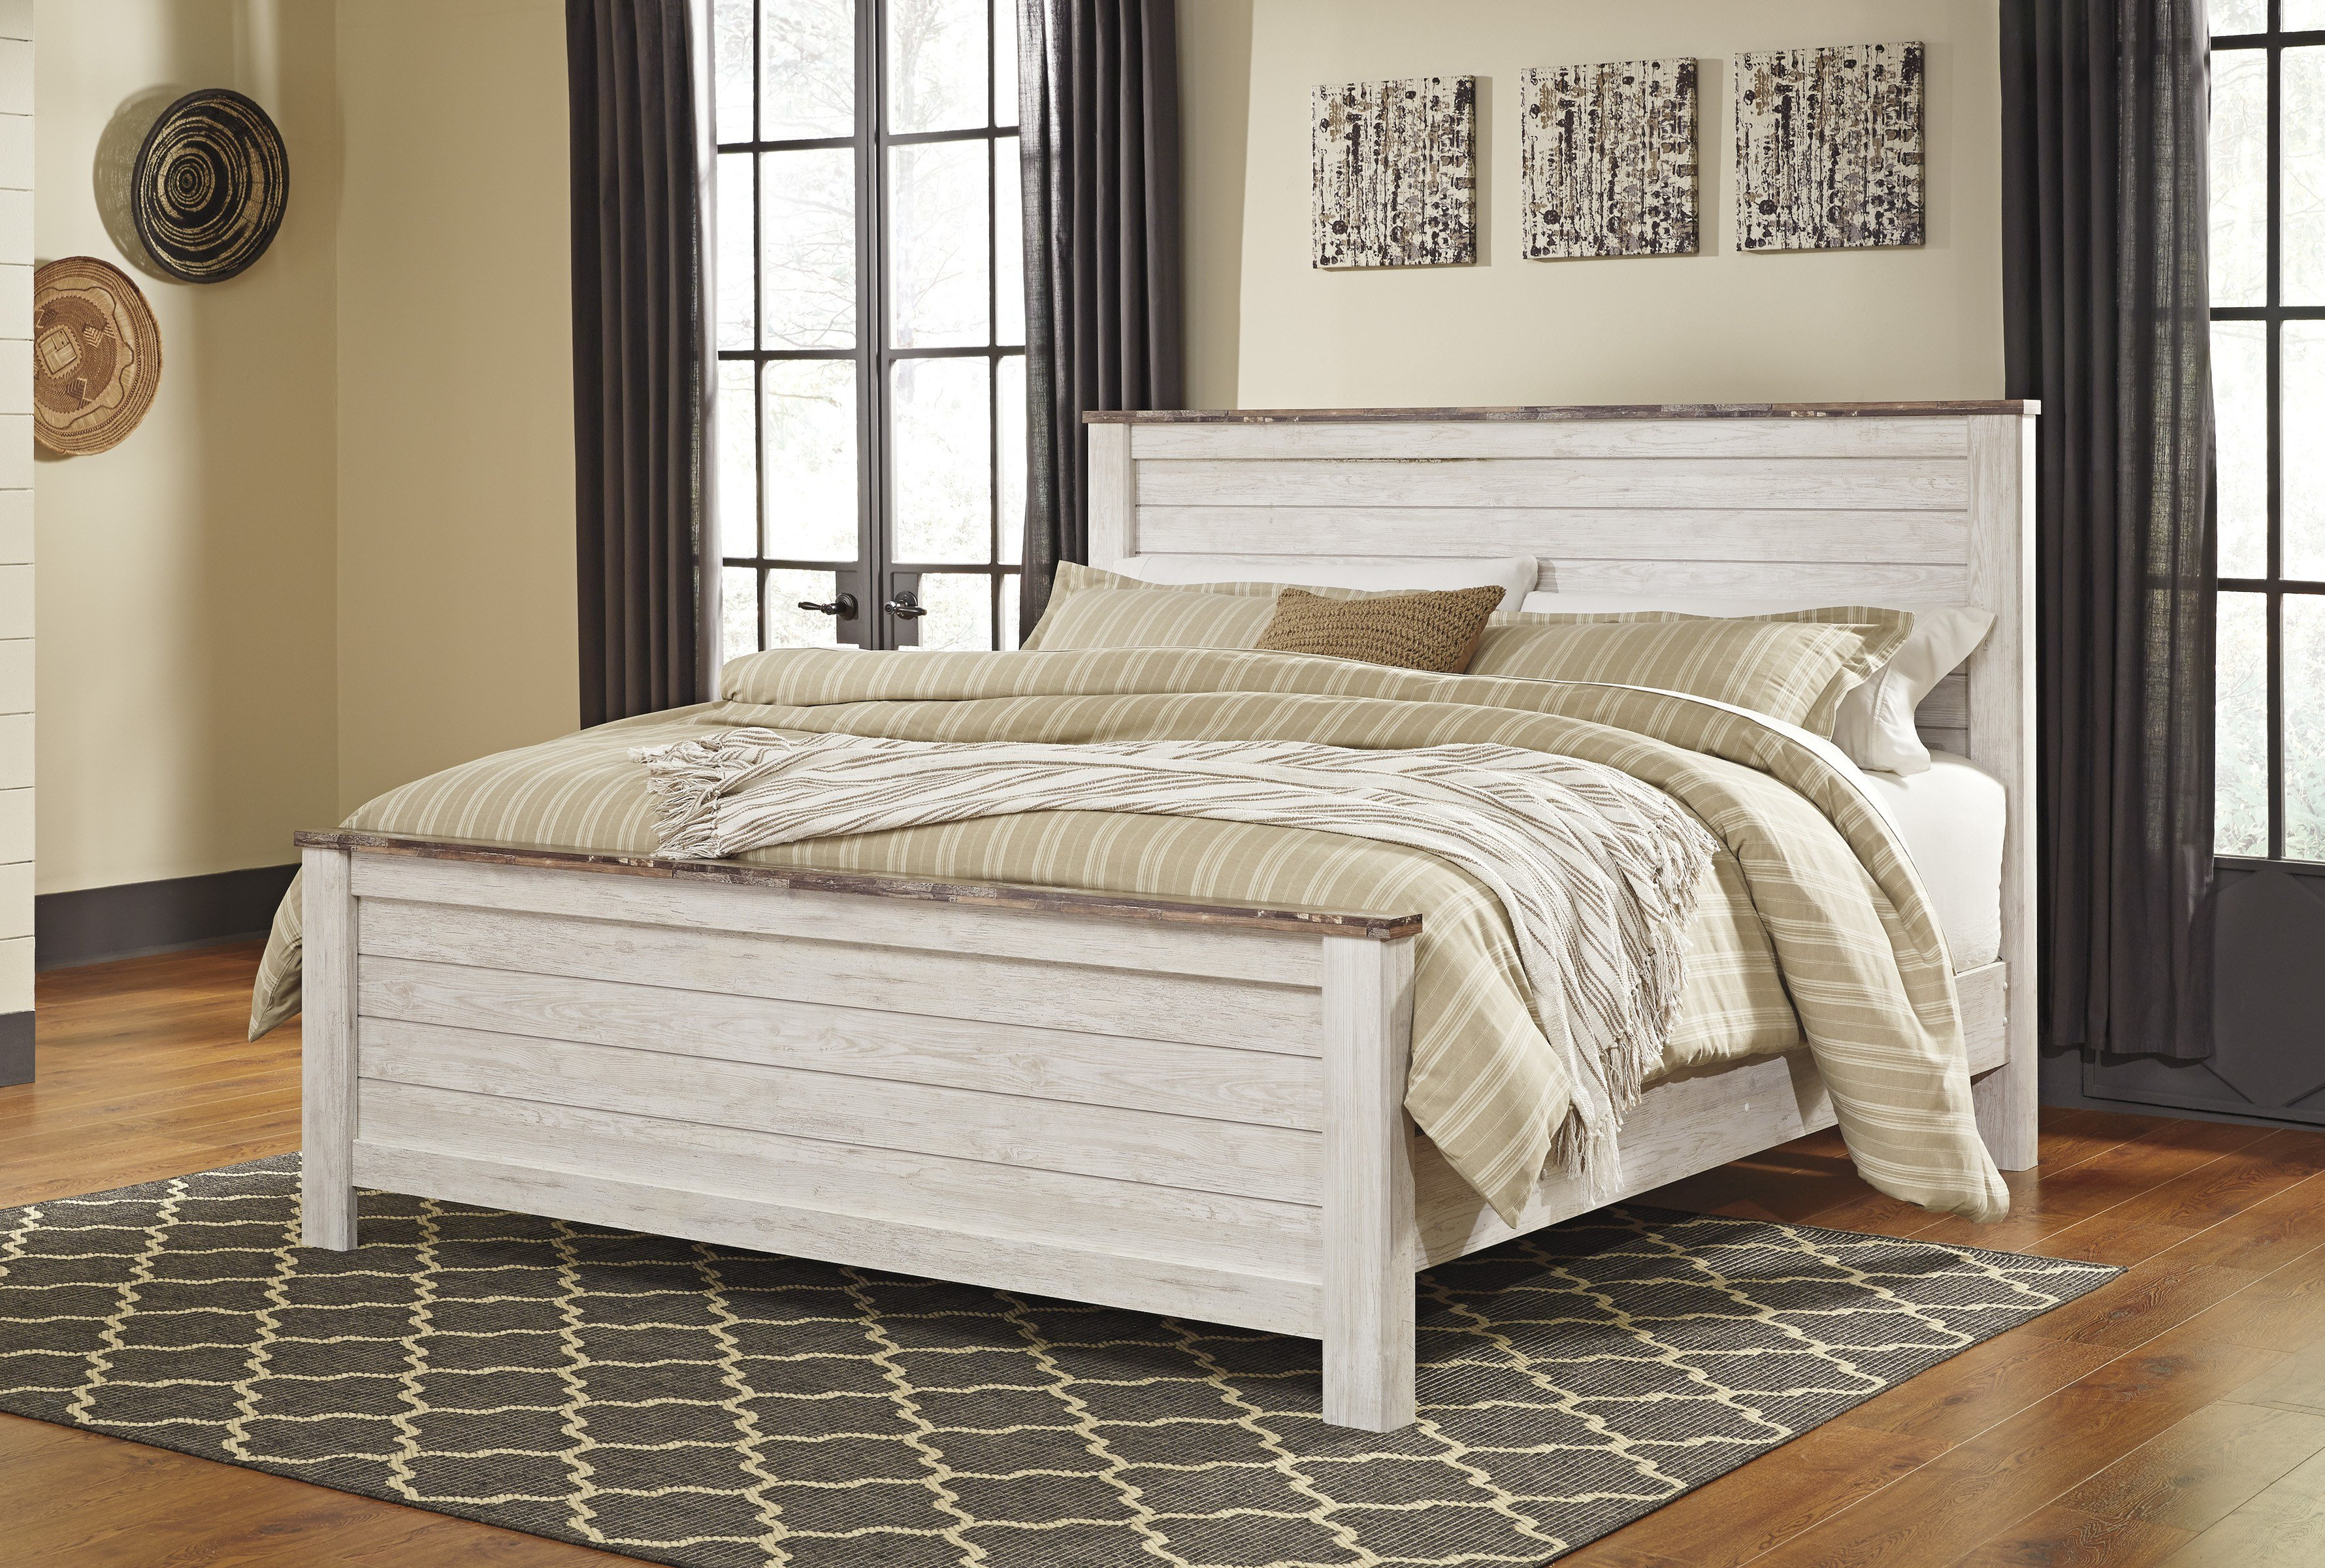 Best Willowton Whitewash Bedroom Set Clearance Sale Marjen With Pictures